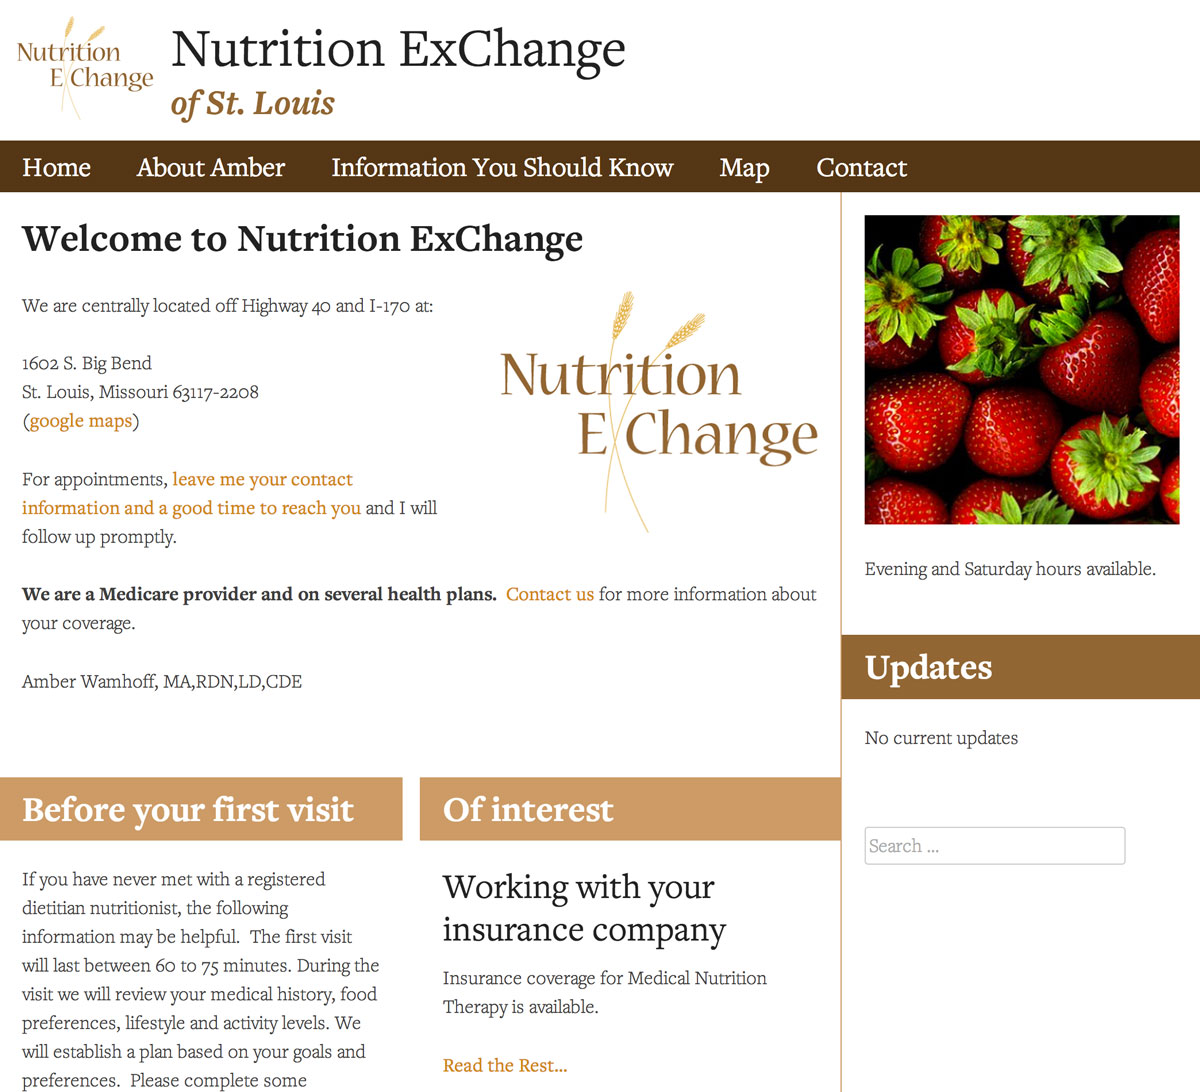 a snapshot of Nutrition ExChange's website